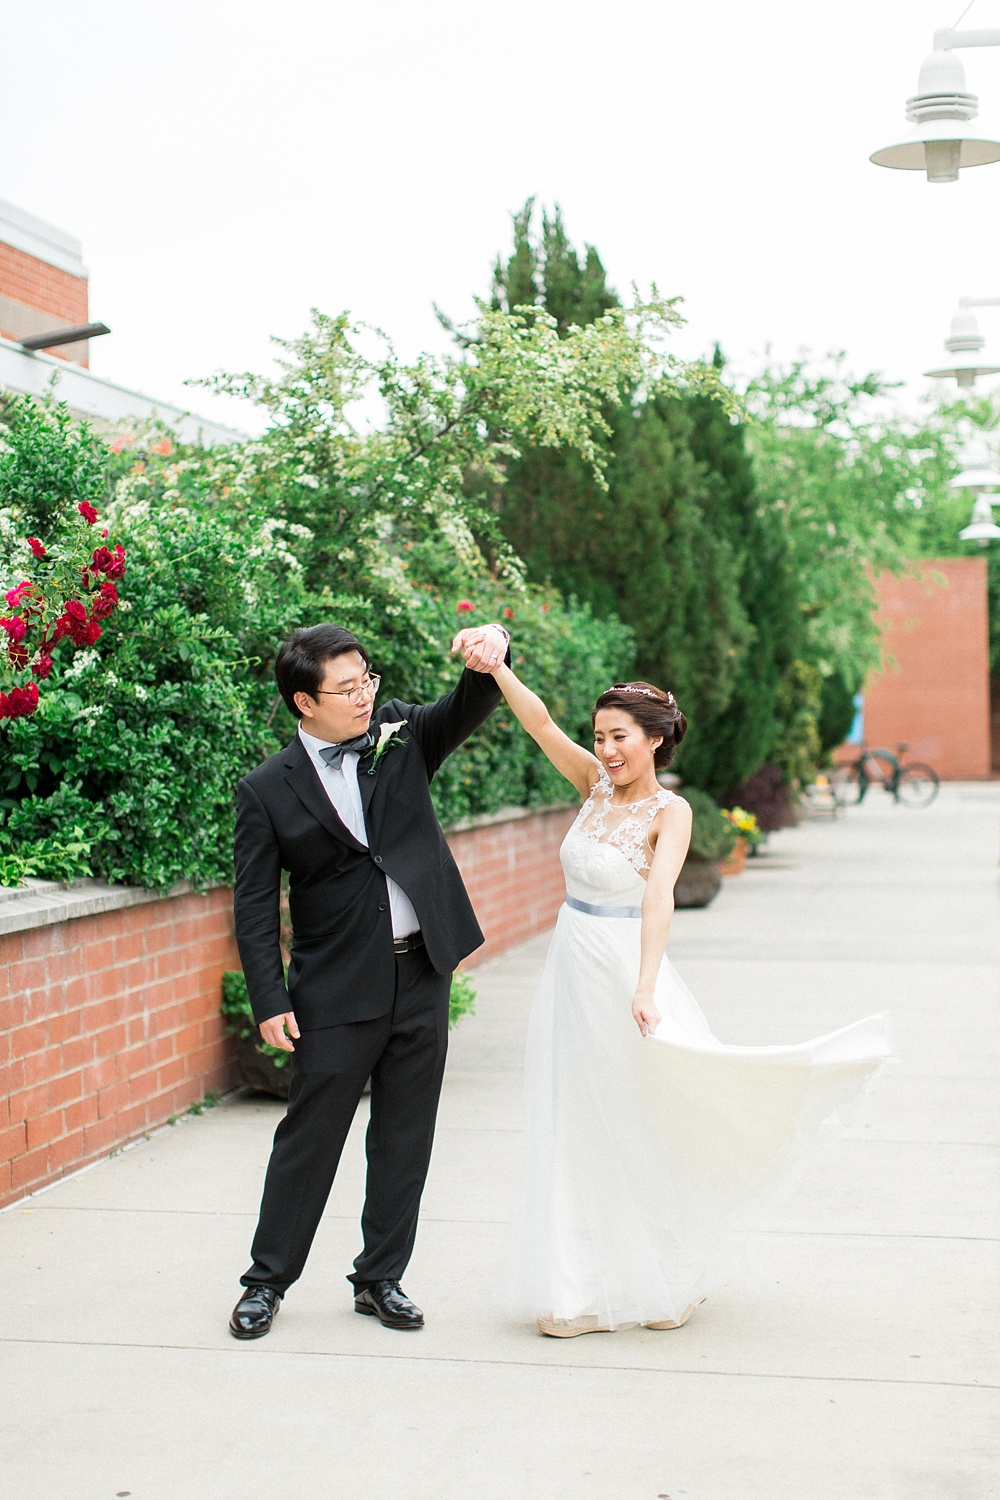 groom twirls bride on their wedding day